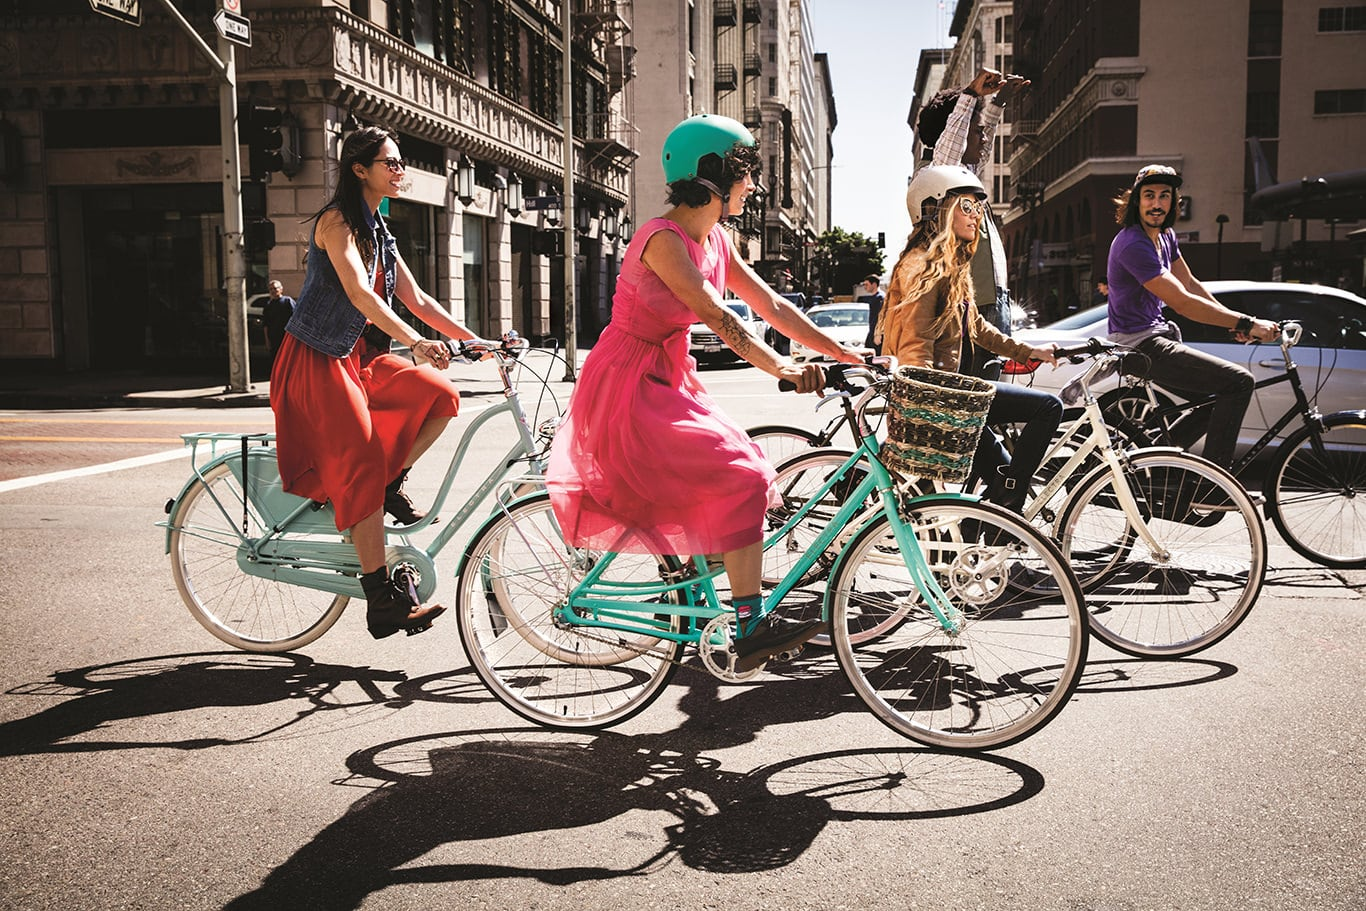 ABOUT ELECTRA BICYCLE